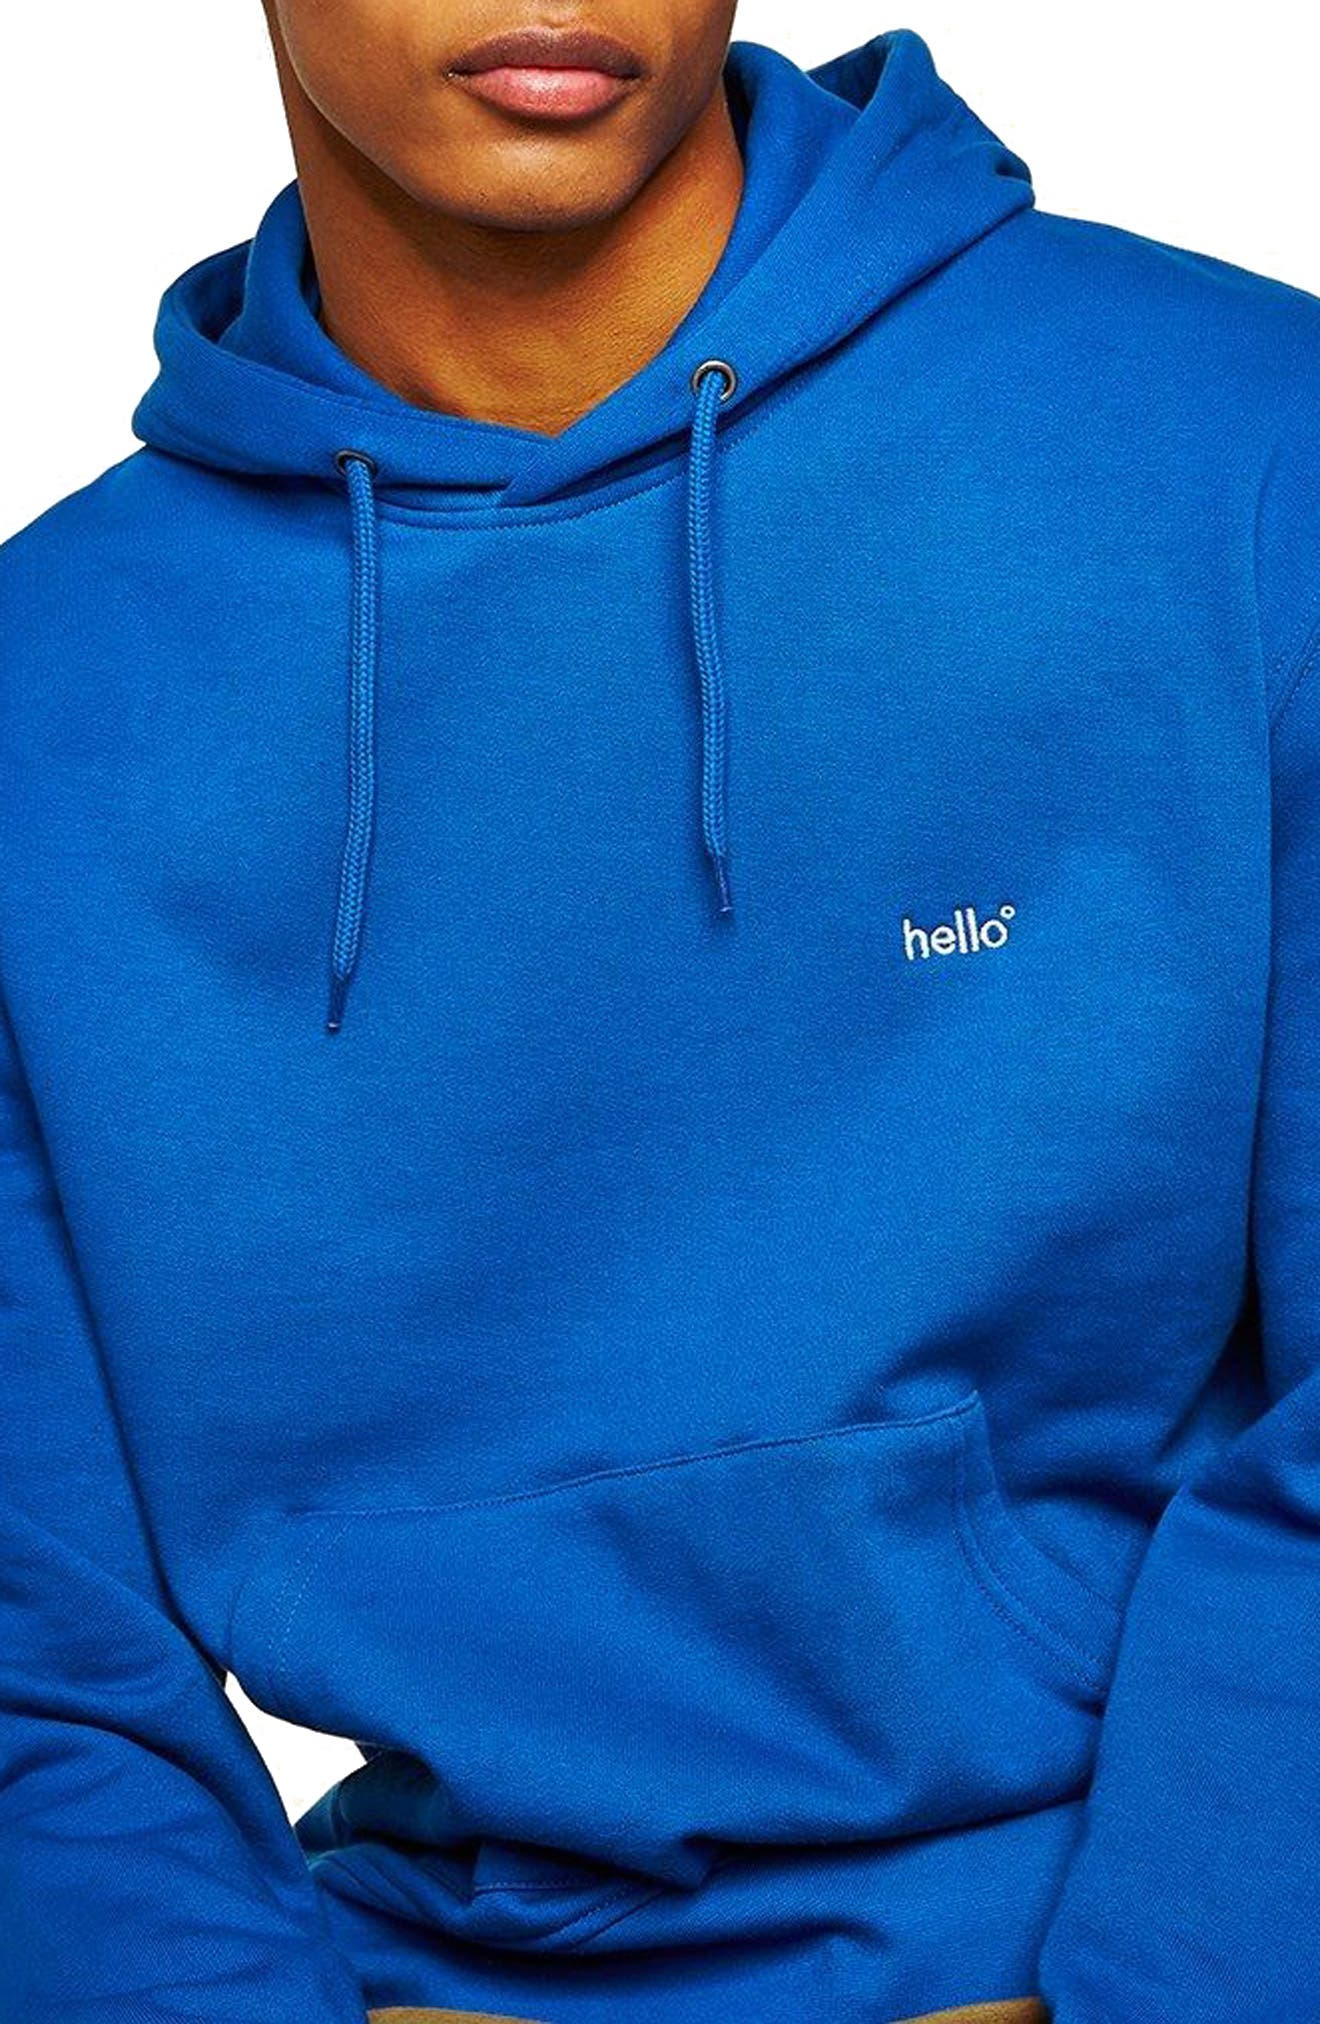 Classic Fit Tristan Hello Embroidered Hoodie,                         Main,                         color, Blue Multi